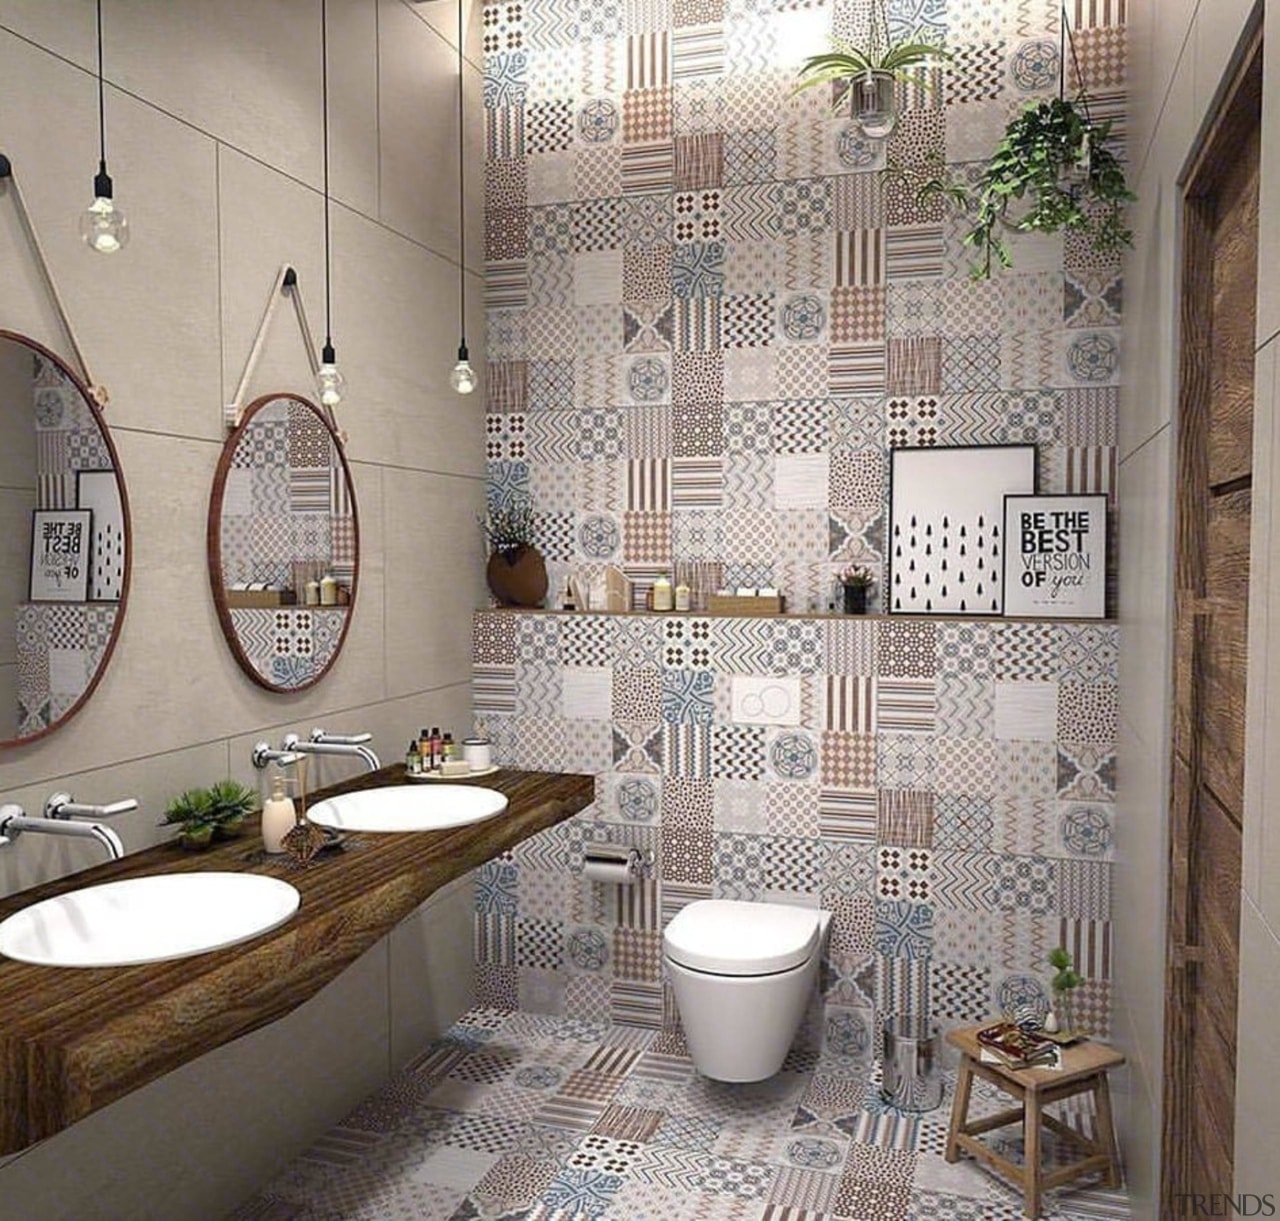 See more tile options from the Tile bathroom, ceiling, ceramic, home, interior design, room, tile, wall, window, gray